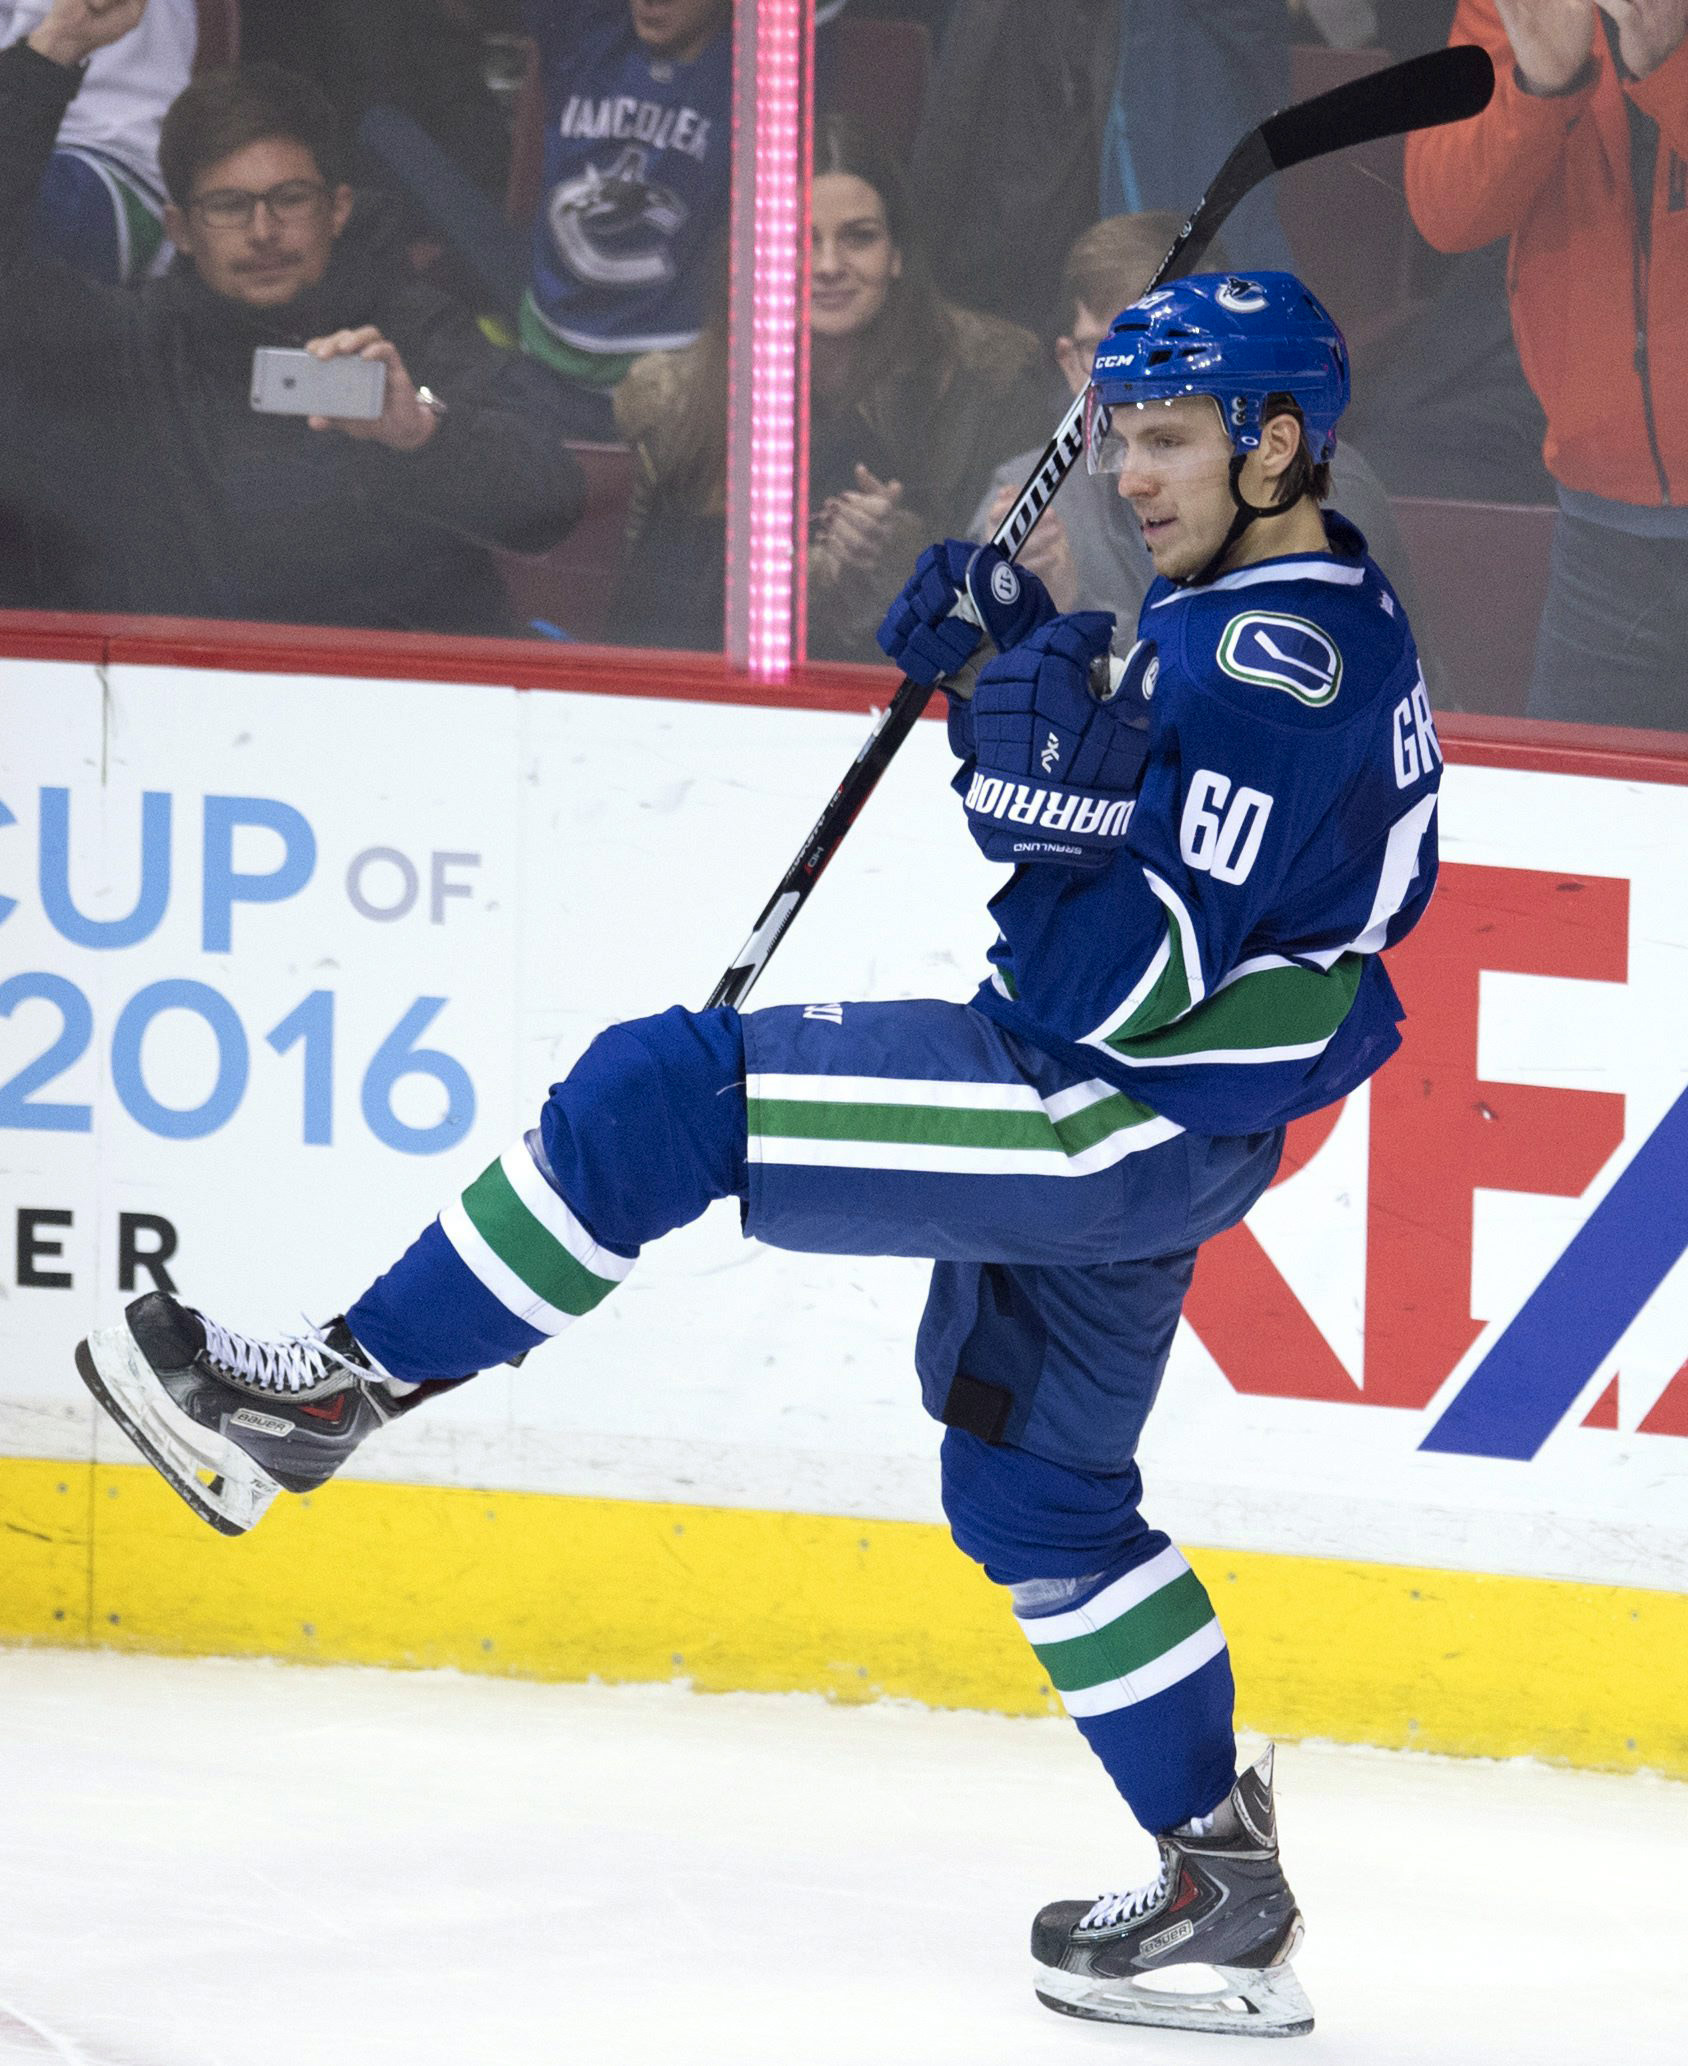 Vancouver Canucks center Markus Granlund celebrates his overtime goal against the Arizona Coyotes during an NHL hockey game Wednesday, March 9, 2016, in Vancouver, British Columbia. (Jonathan Hayward/The Canadian Press via AP)